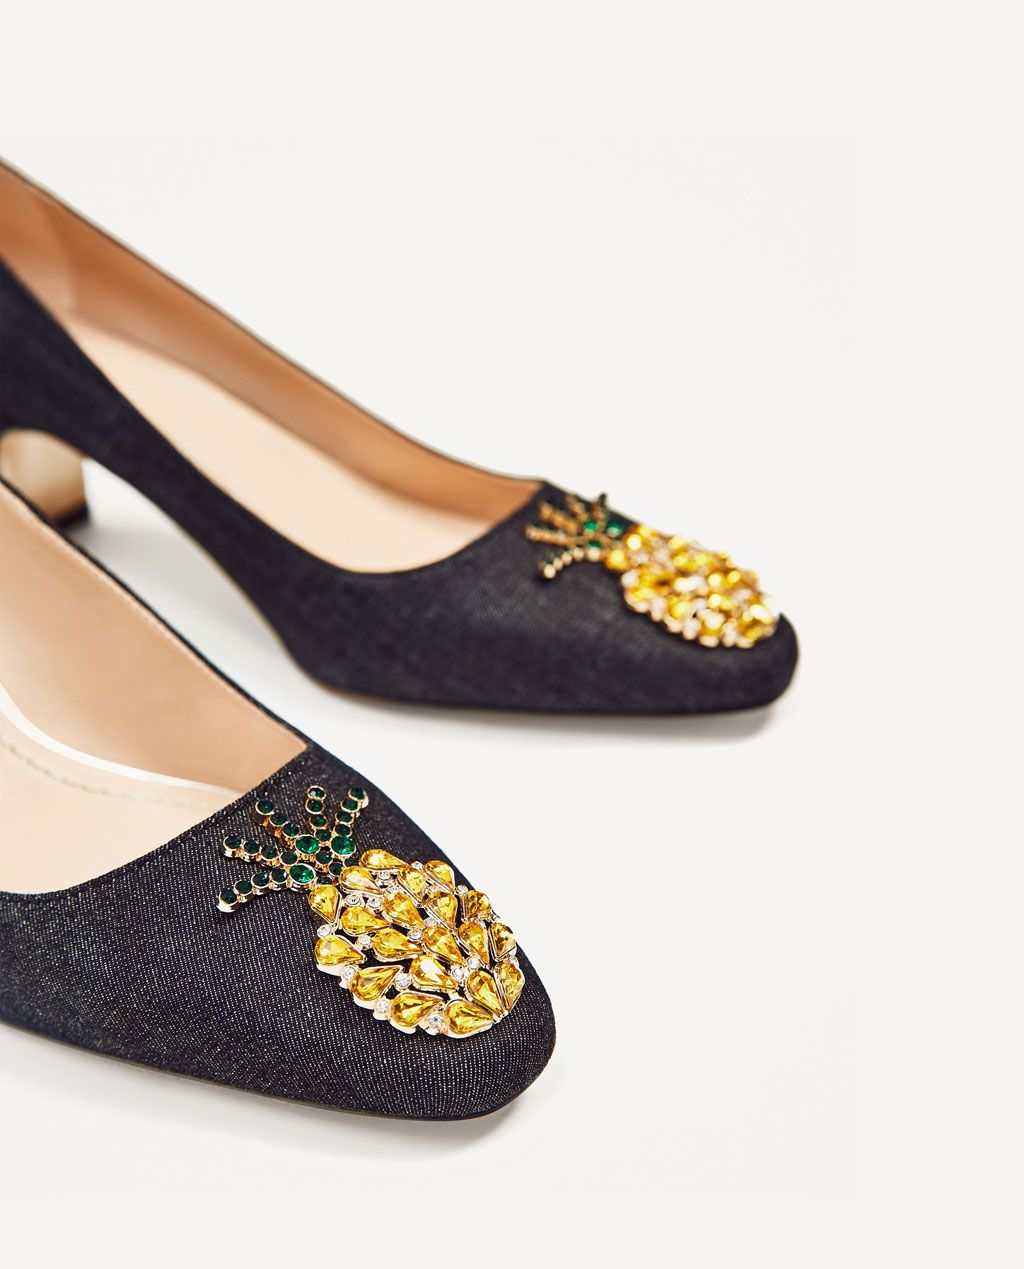 MID-HEEL DENIM SHOES WITH PINEAPPLE DETAIL-SHOES-SALE-WOMAN | ZARA